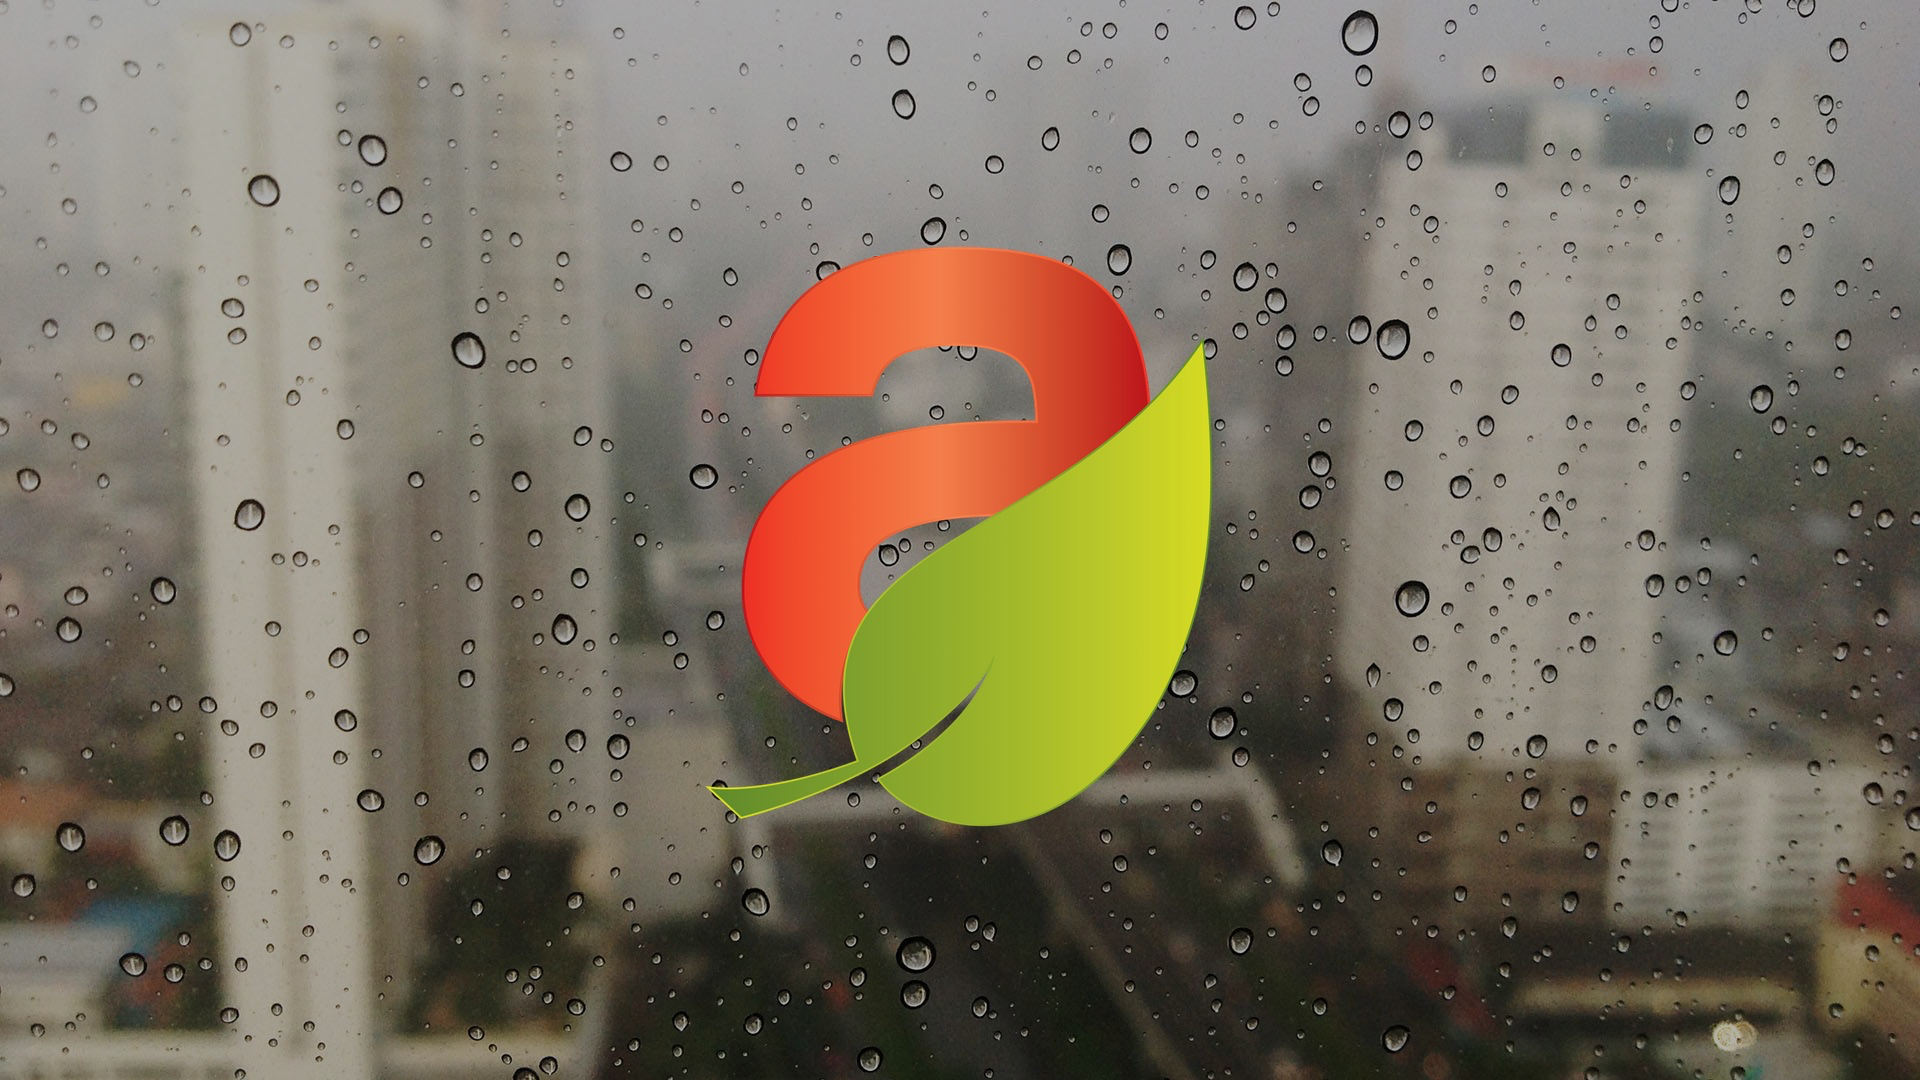 altruly Icon on Wet Window